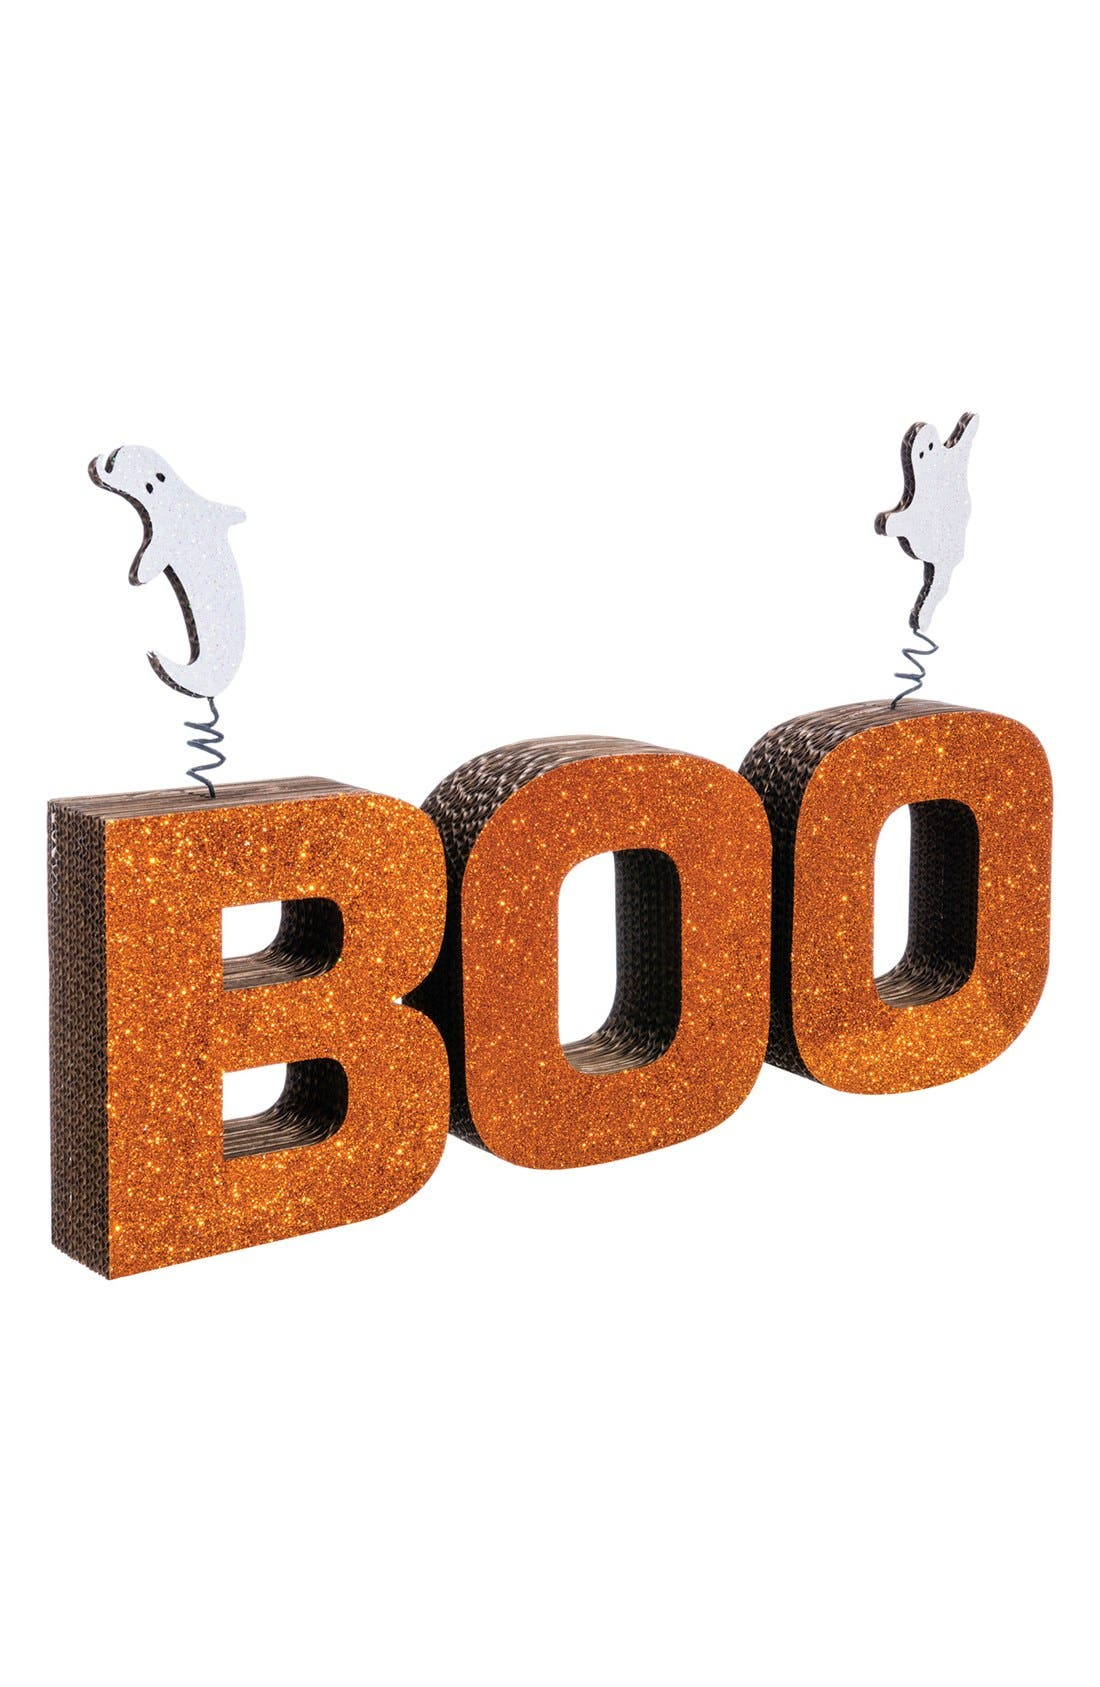 Main Image - ALLSTATE 'Boo' Ghost Decoration